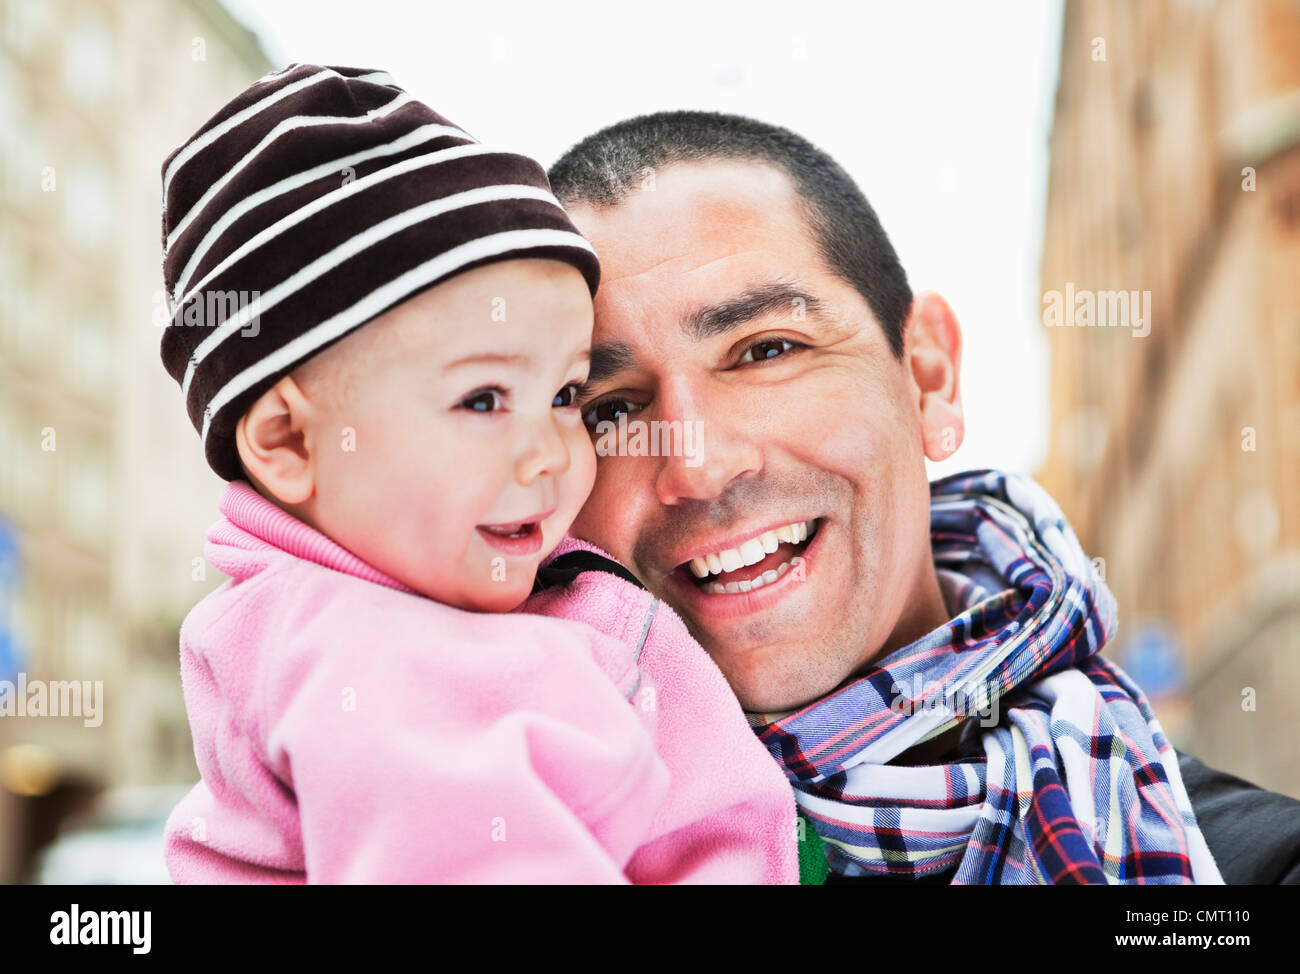 Close-up of smiling father and cute daughter (0-11 months) - Stock Image